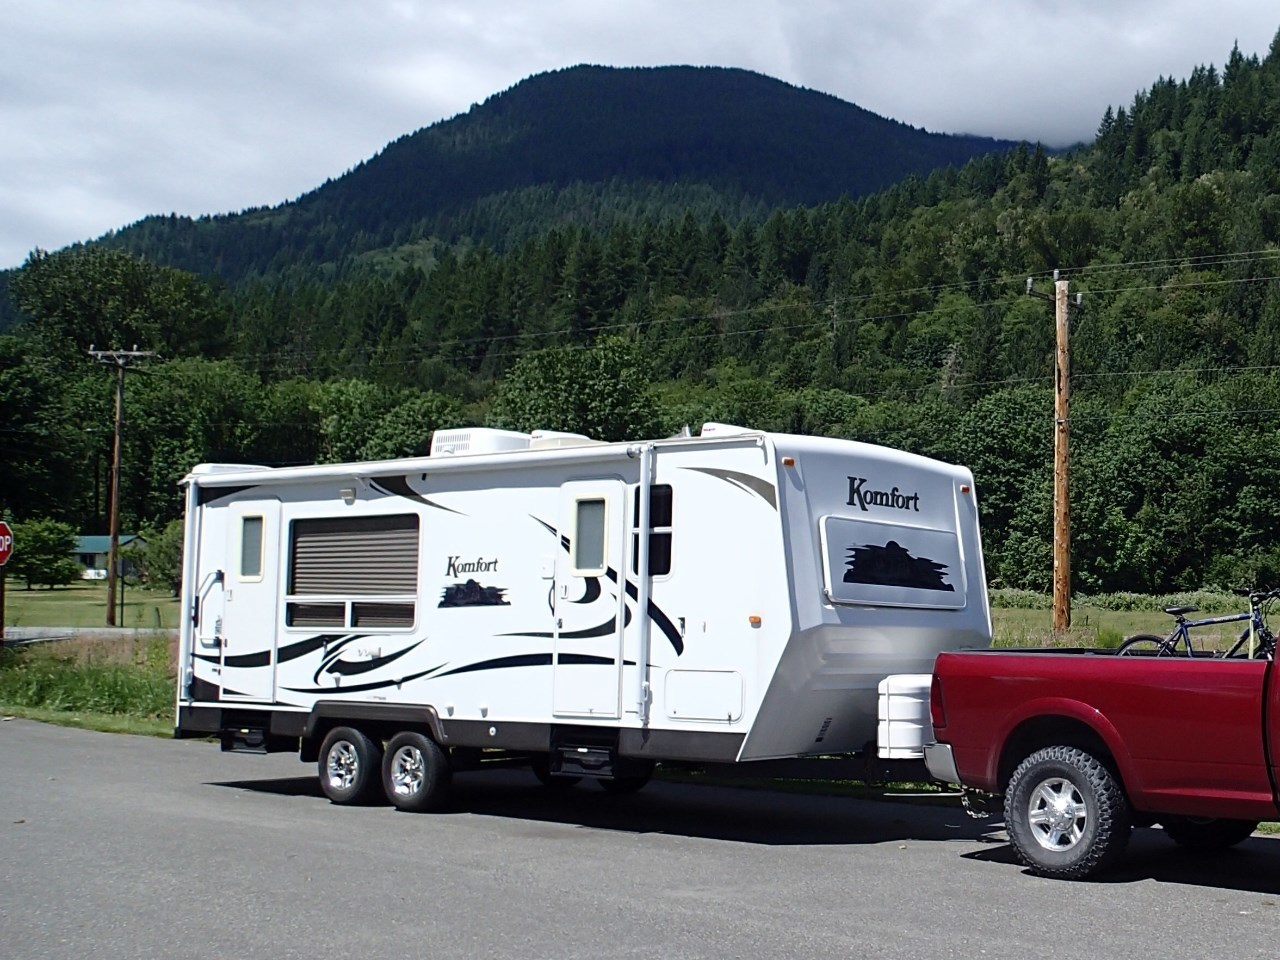 What do reviews say about Komfort Travel Trailer RVs?